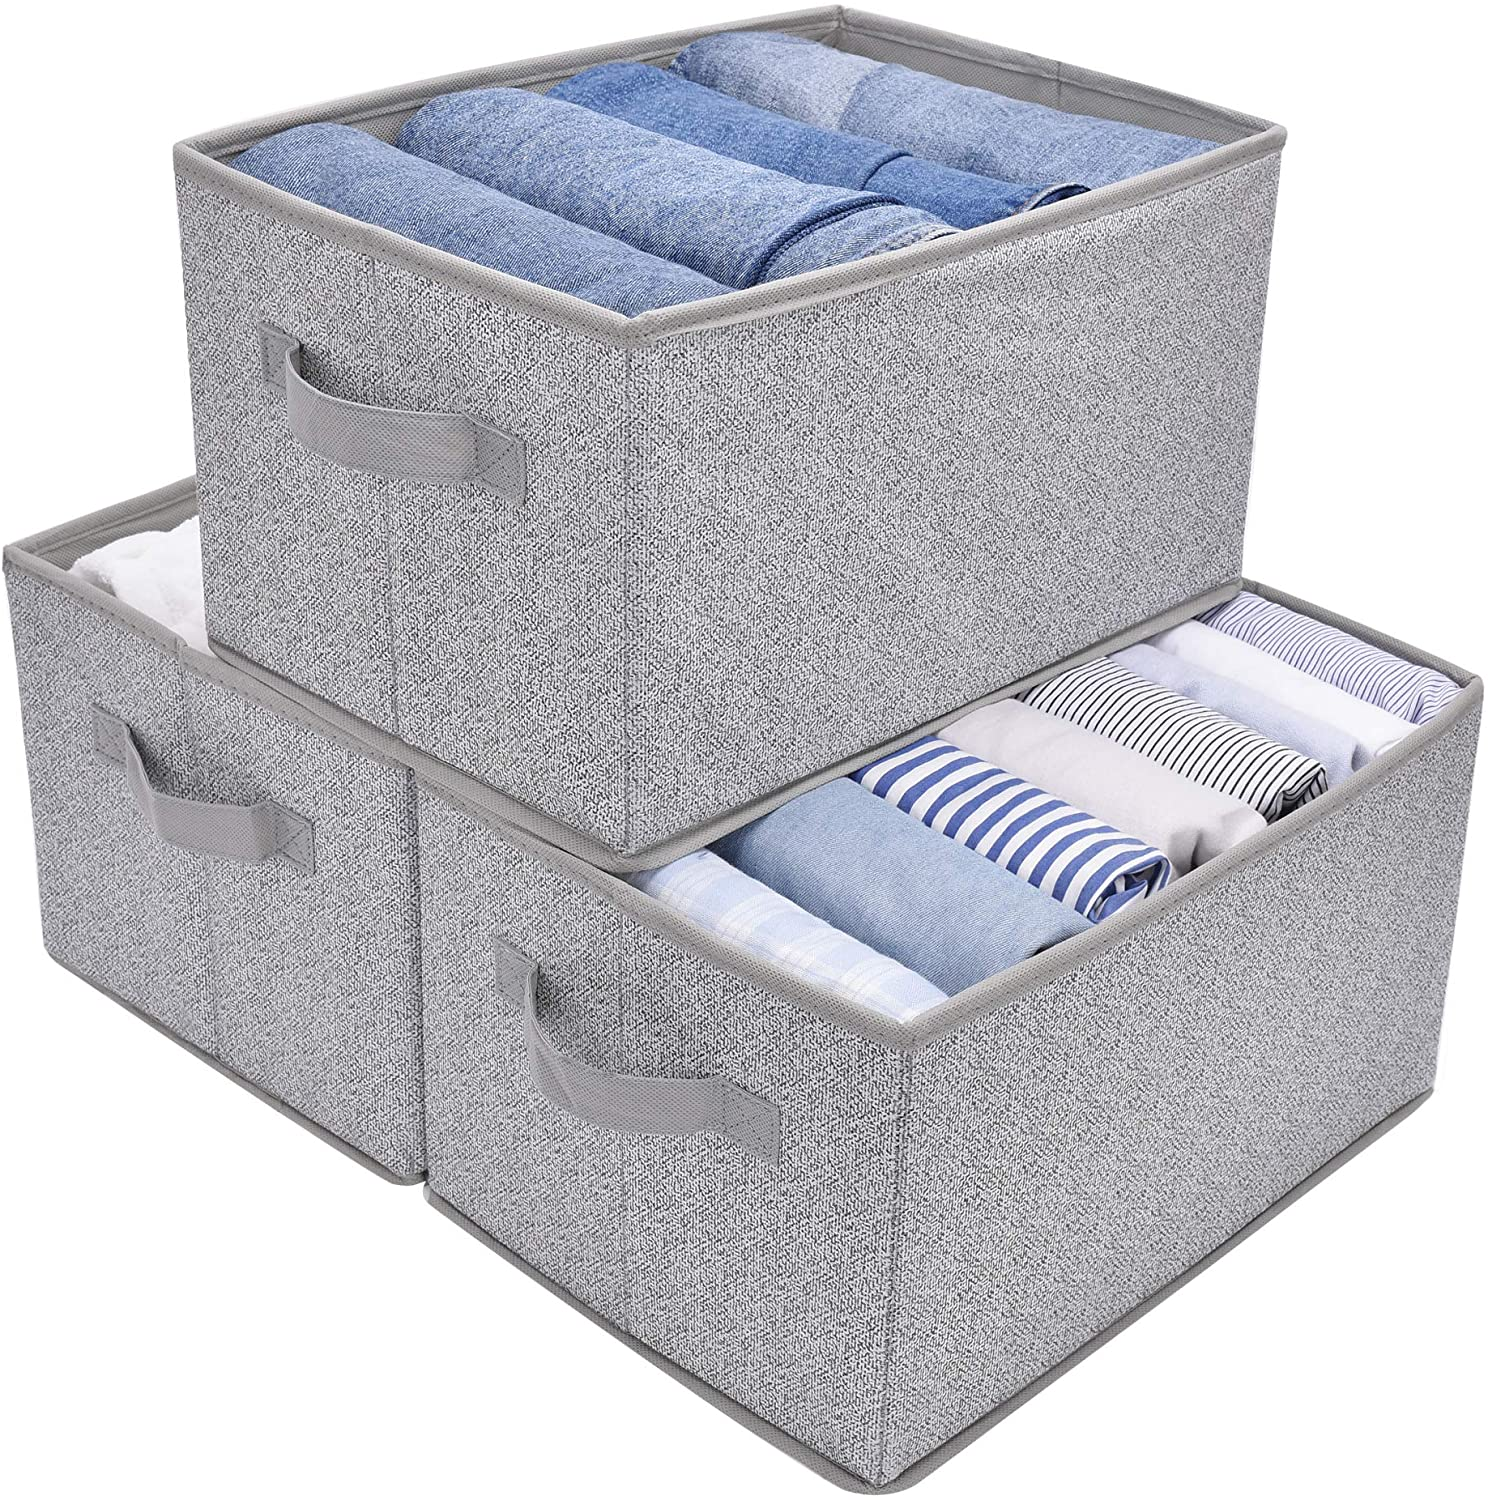 GRANNY SAYS Storage Bin for Shelves, Fabric Closet Organizer Shelf Cube Box with Handle Home Office Storage Baskets, Large, Gray, 3-Pack